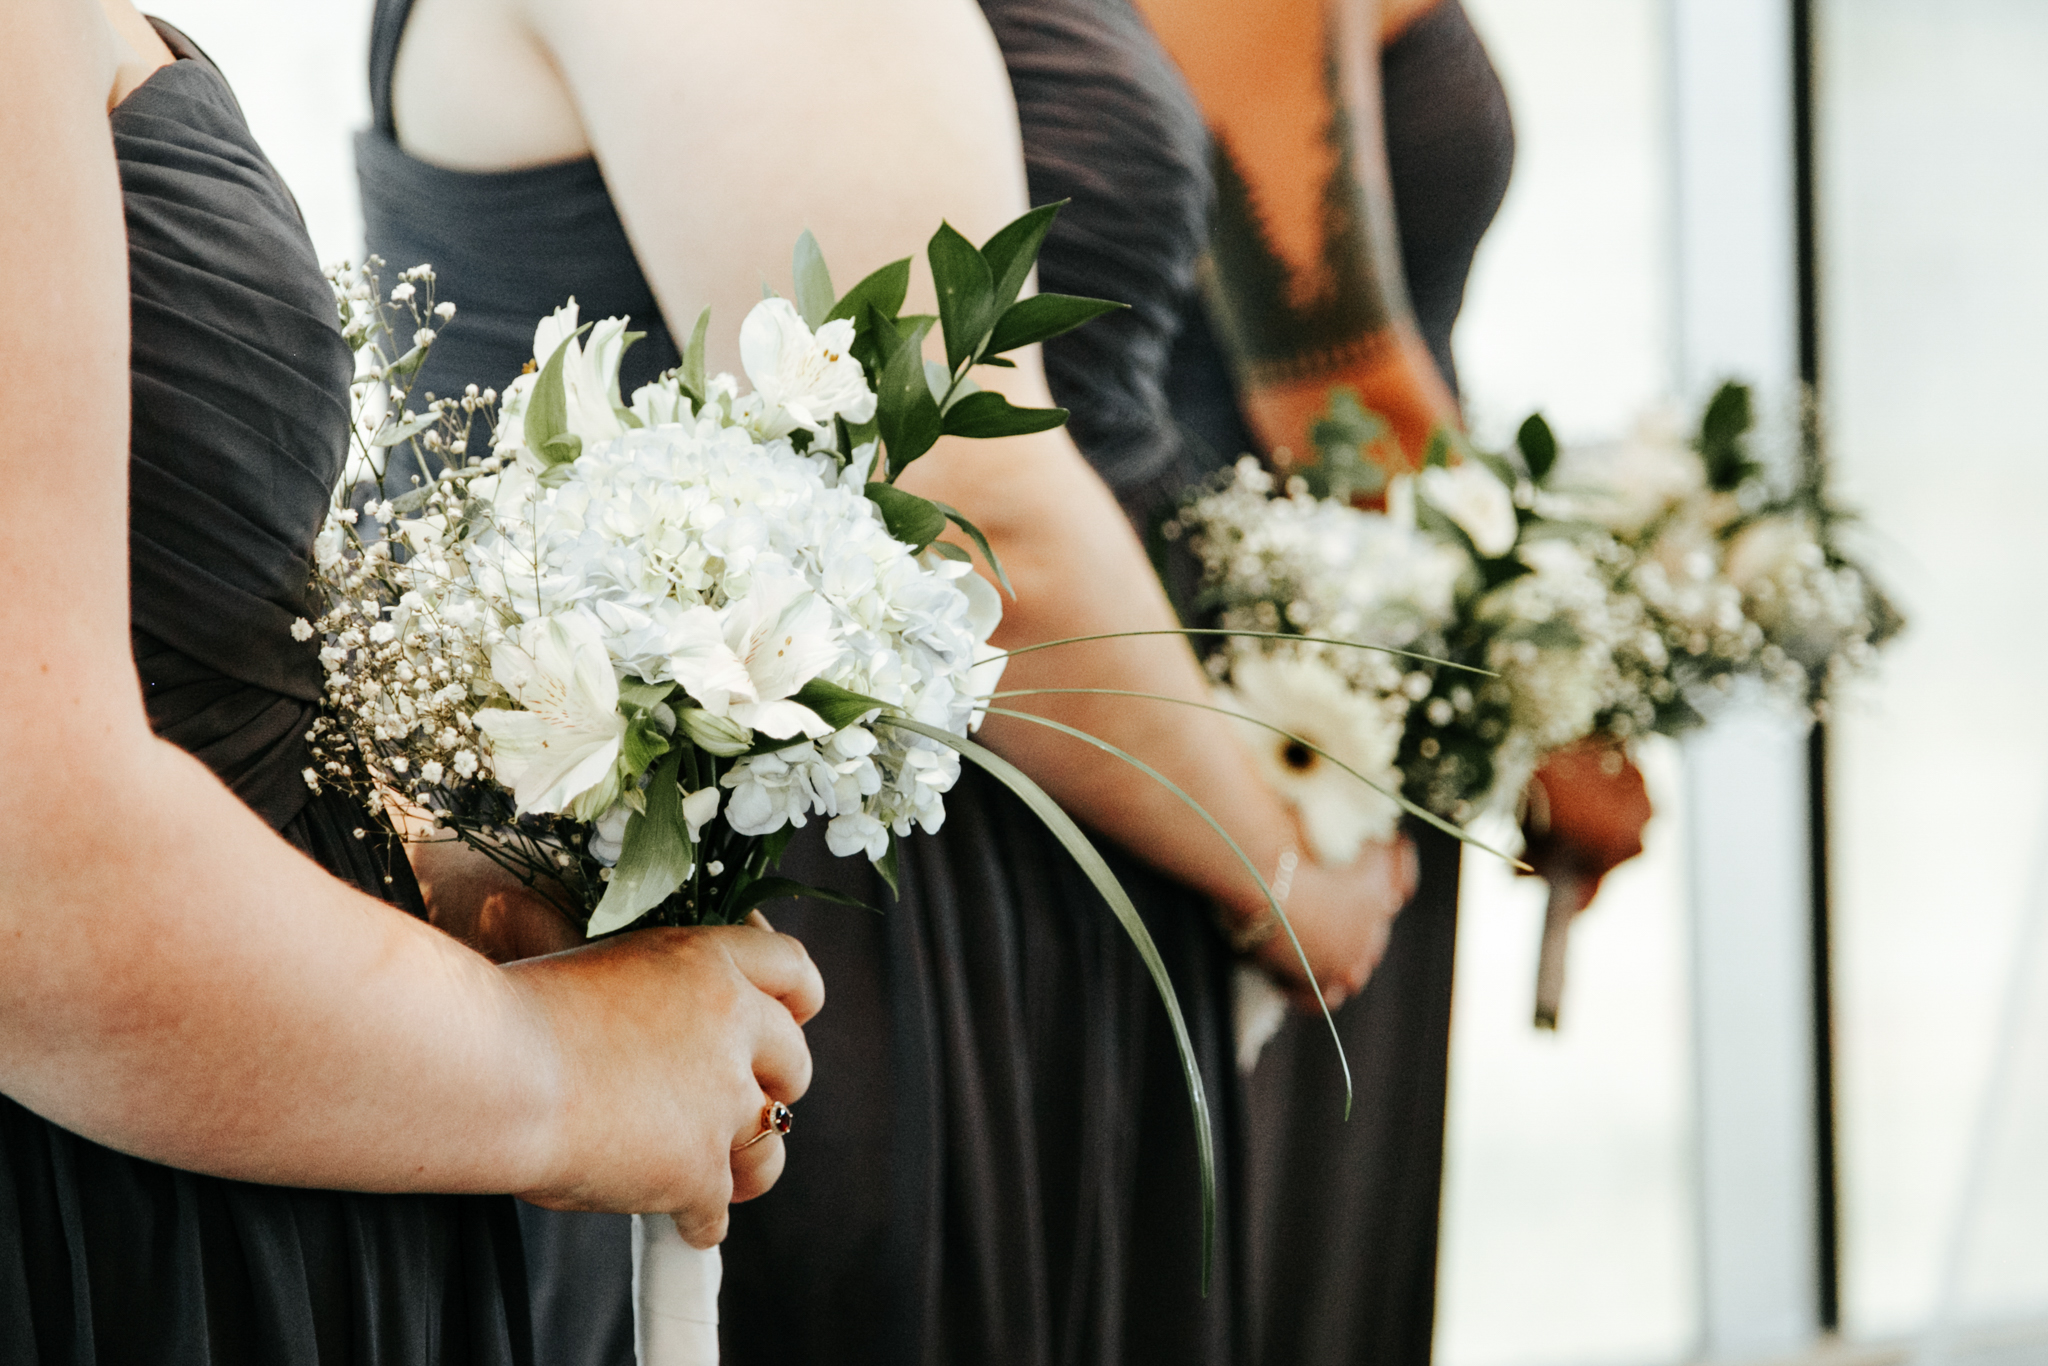 lethbridge-wedding-photographer-love-and-be-loved-photography-trent-danielle-galt-reception-picture-image-photo-47.jpg